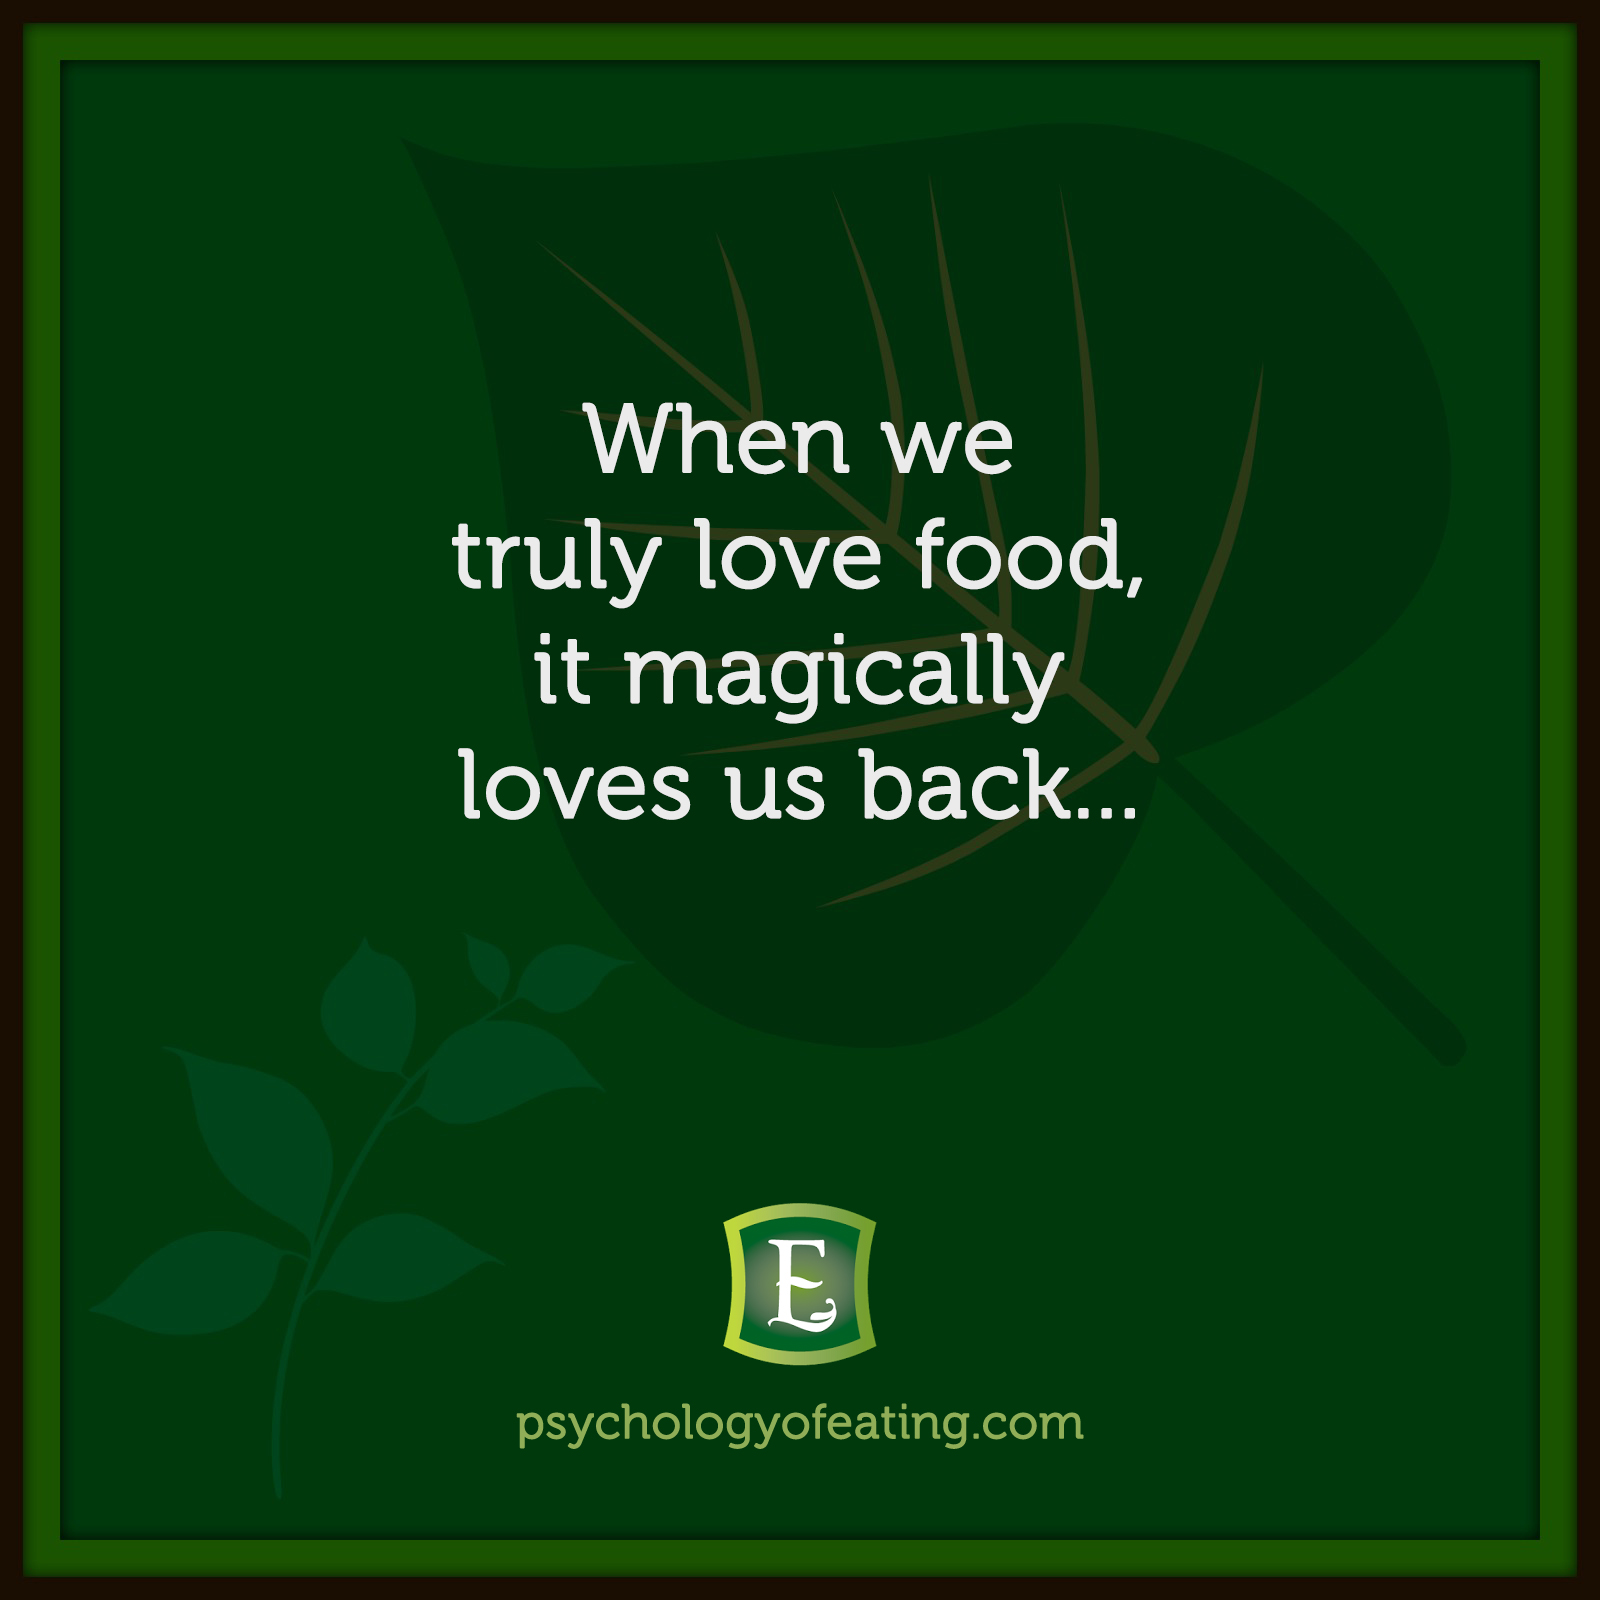 When we truly love food, it magically loves us back…  Marc David #health #nutrition #eatingpsychology #IPE